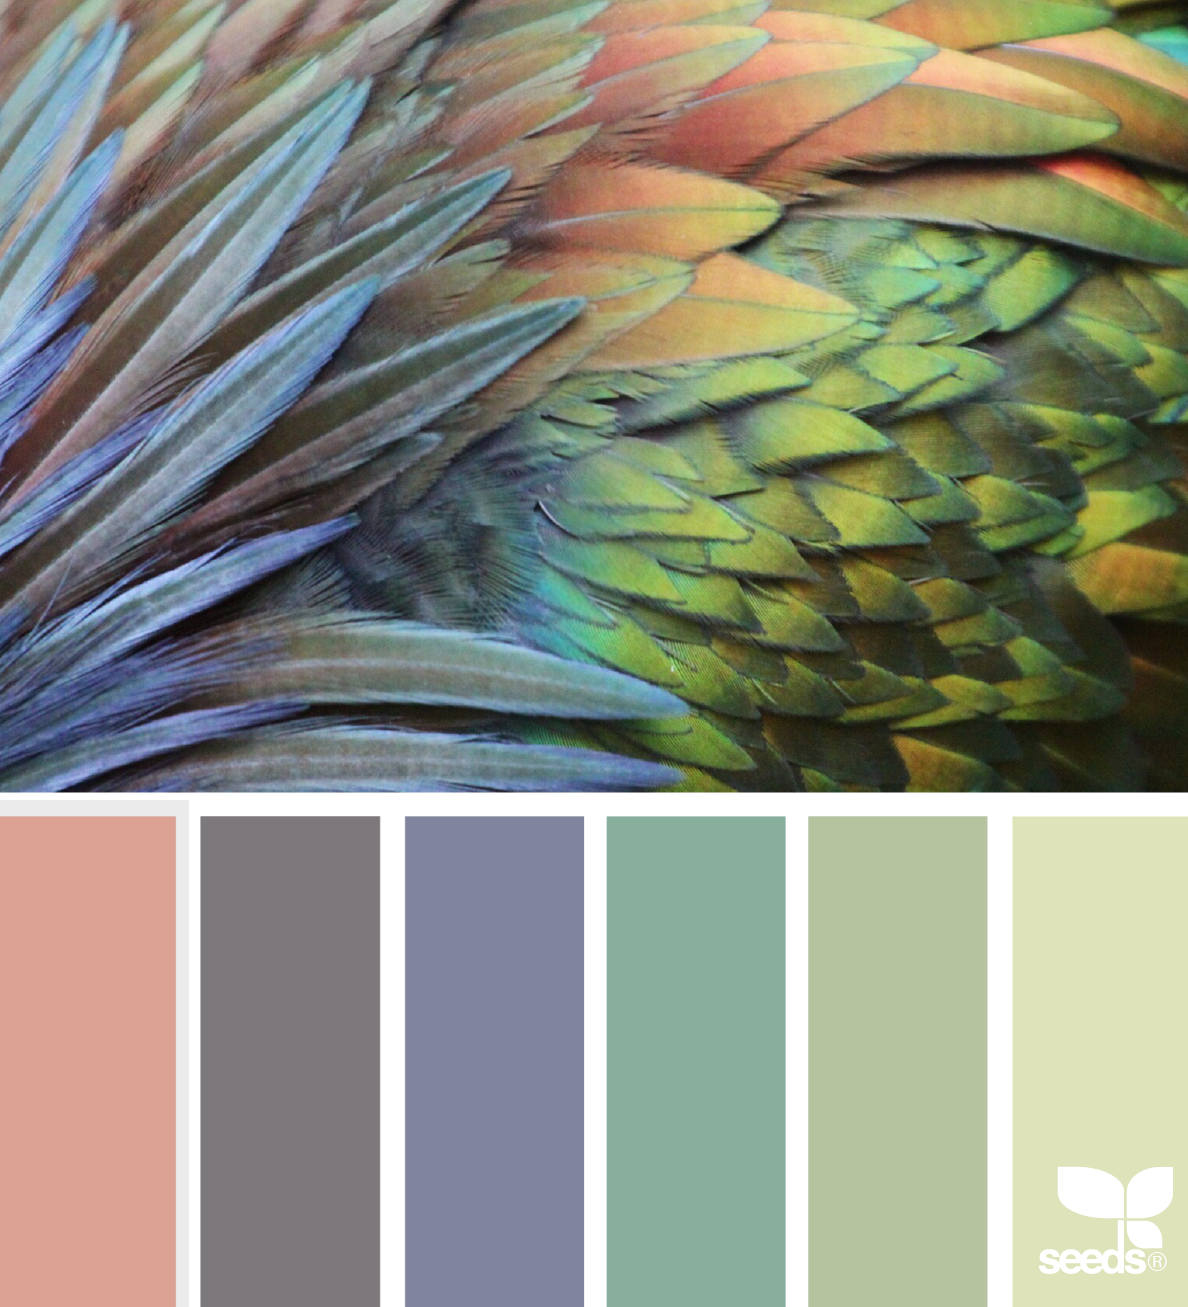 Color inspiration board from bird feathers